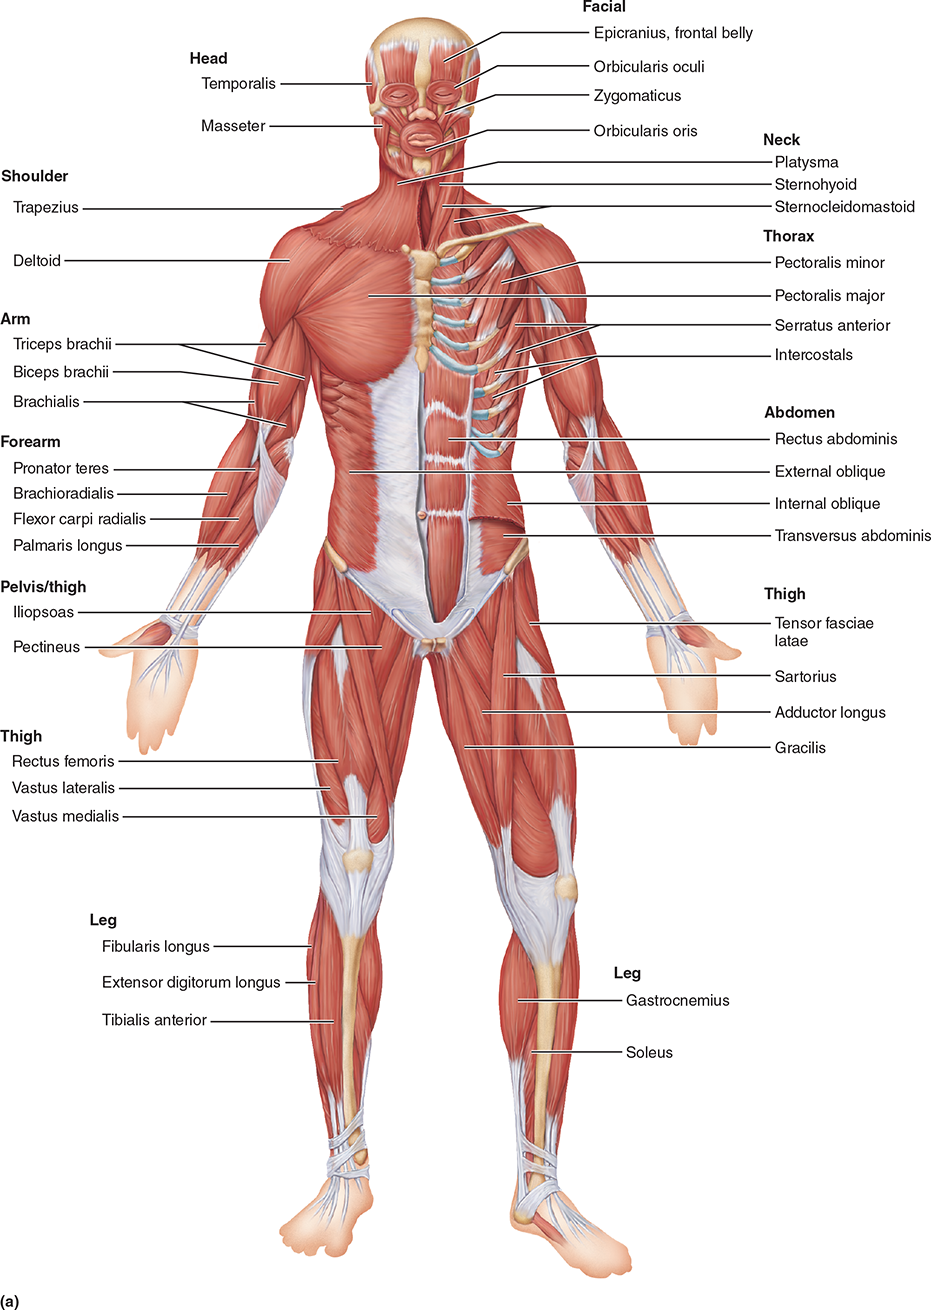 Major Skeletal Muscles Of The Body Anatomy Pinterest Anatomia